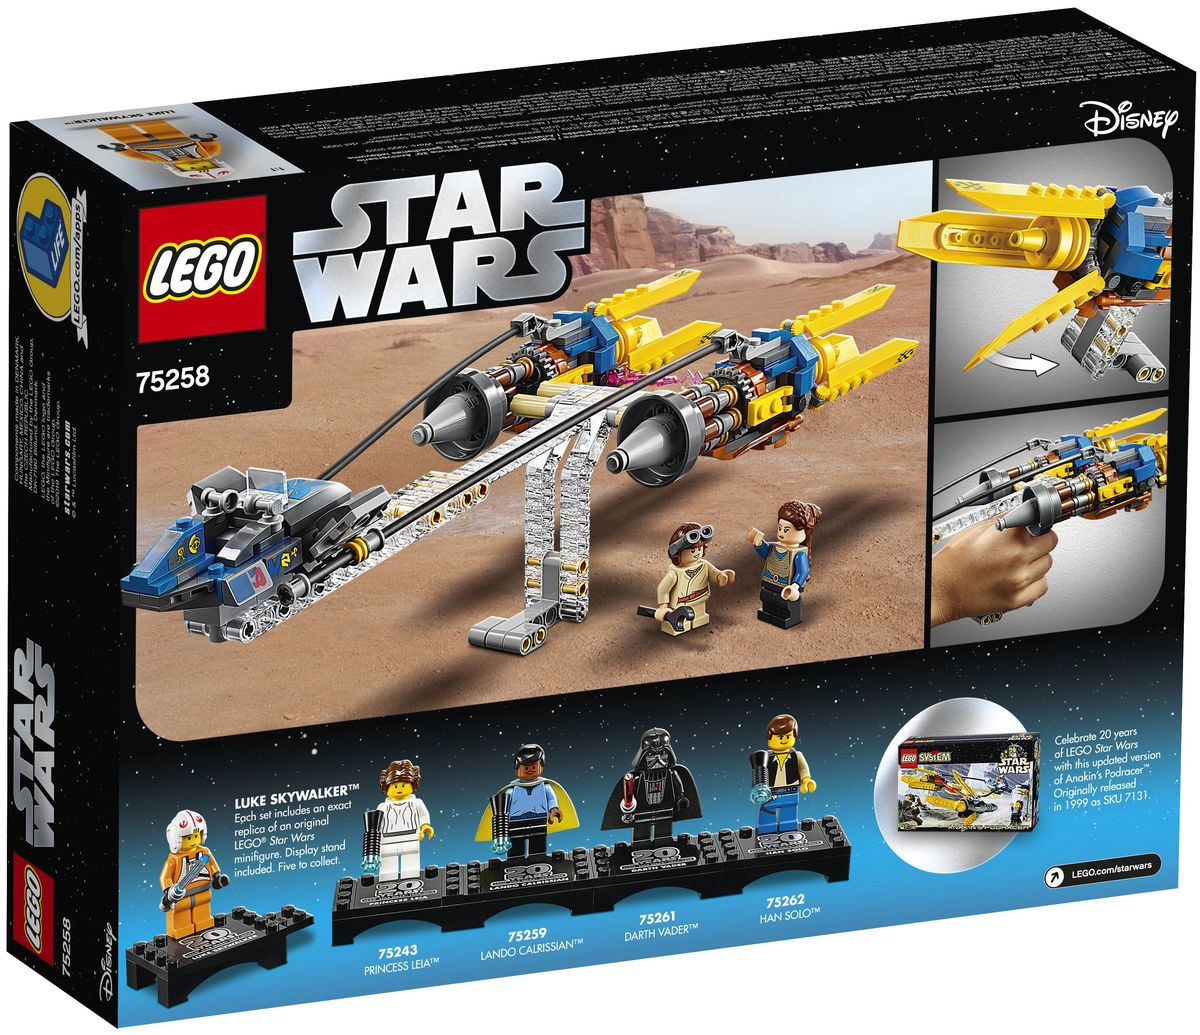 LEGO-75258-Anakins-Podracer-20th-anniversary-7-1